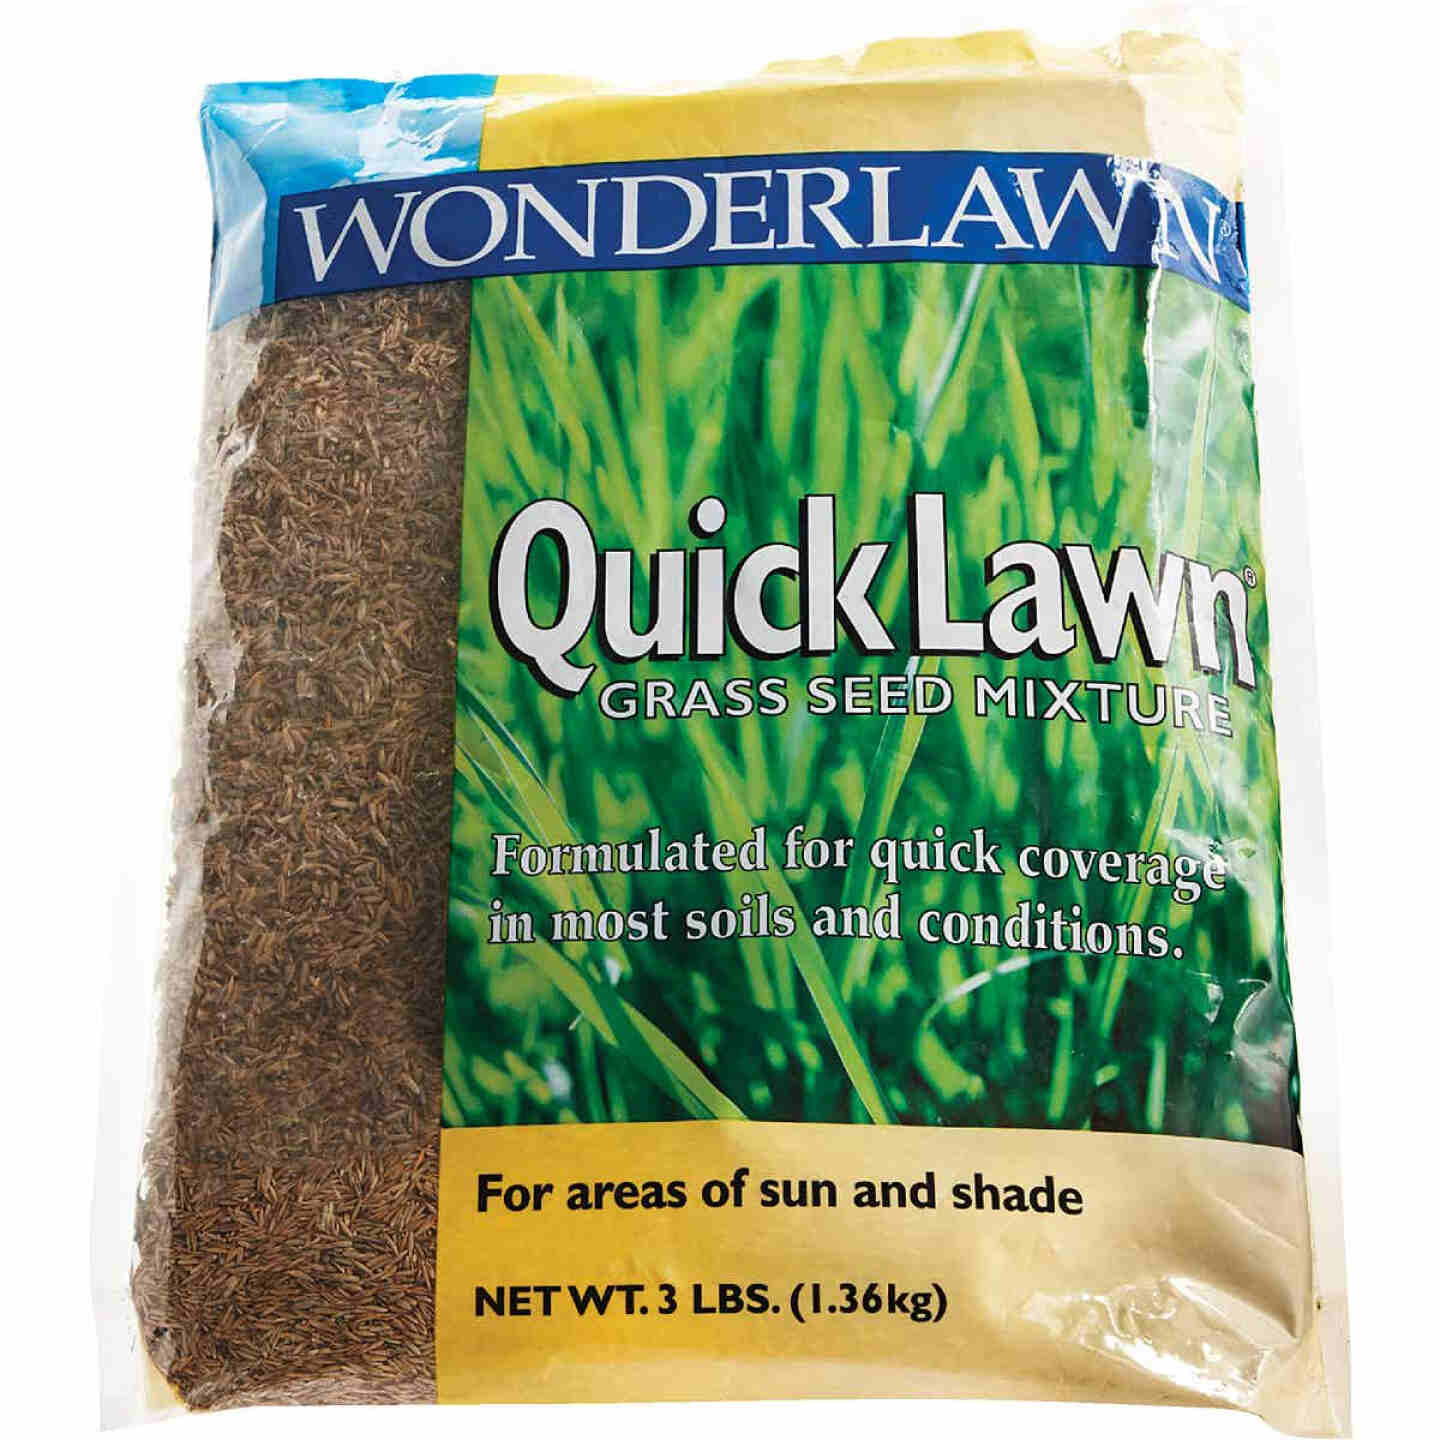 Wonderlawn Quick Lawn 3 Lb. 900 Sq. Ft. Coverage Annual & Perennial Ryegrass Grass Seed Image 6